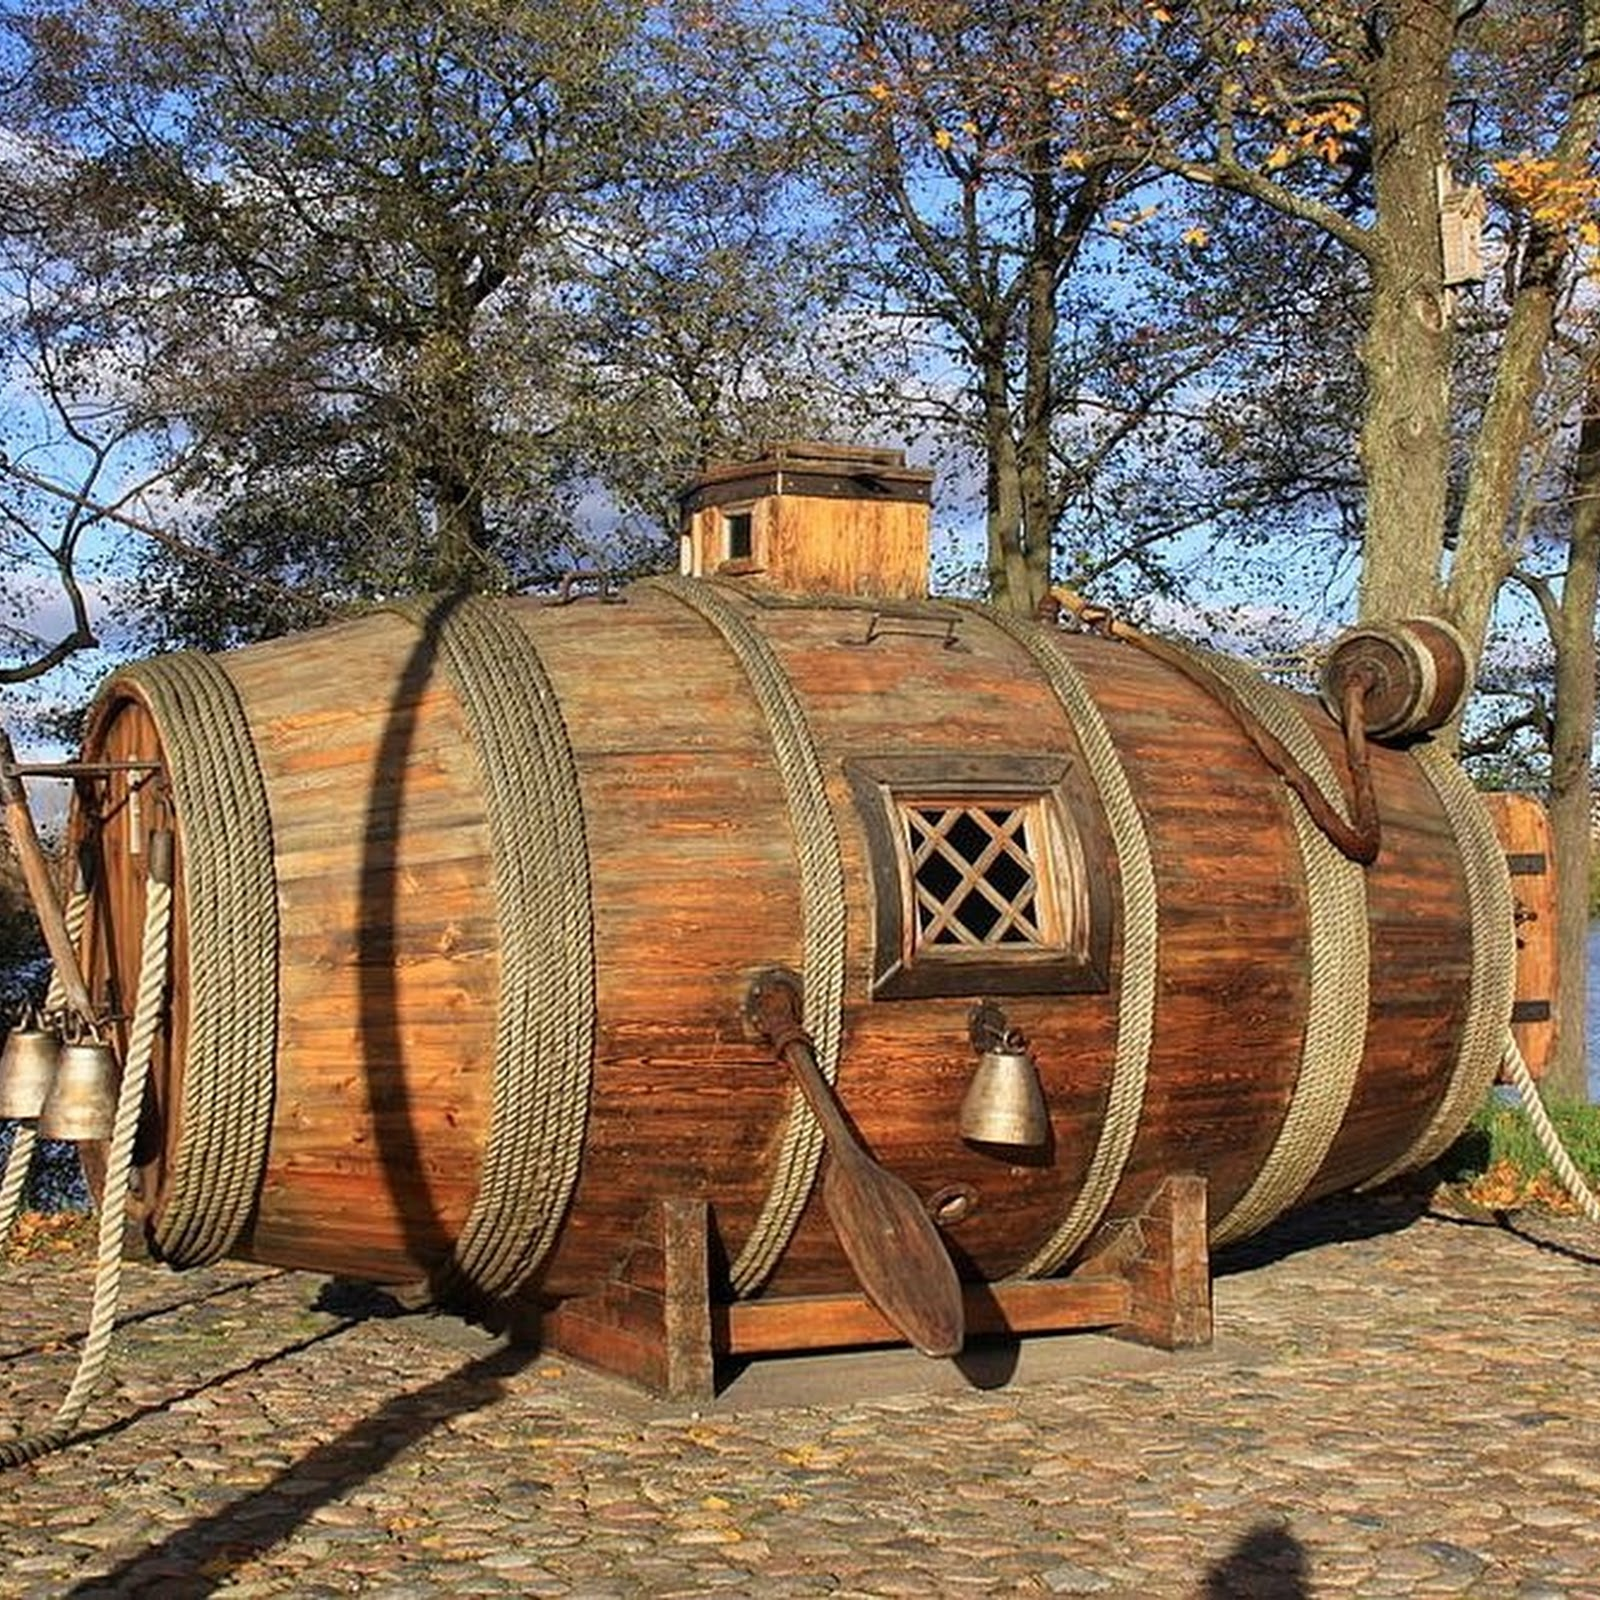 This Wooden Barrel Was The World's First Military Submarine